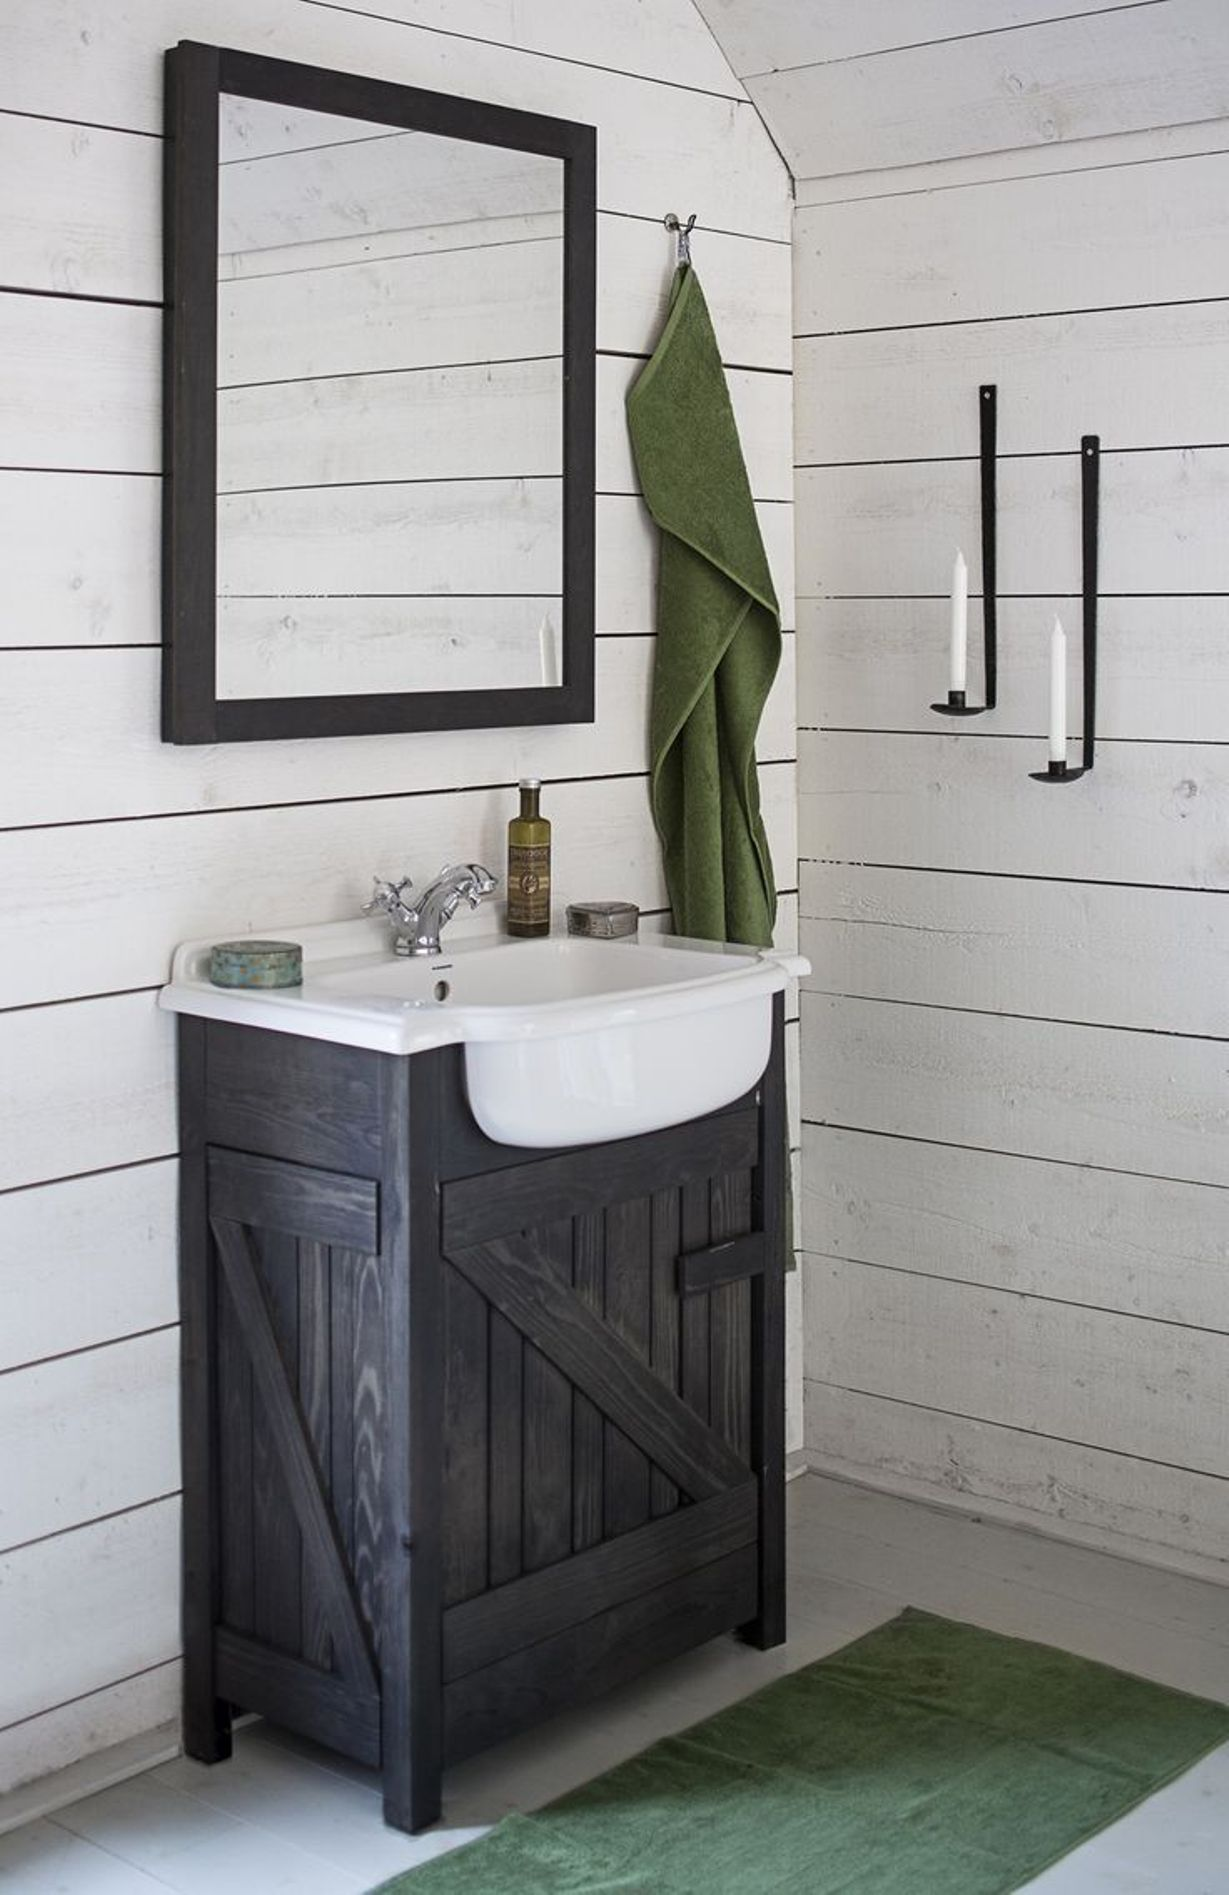 Charmant Bathroom , Elegant Rustic Bathroom Vanities : Small Rustic Bathroom  Vanities With Black Color And White